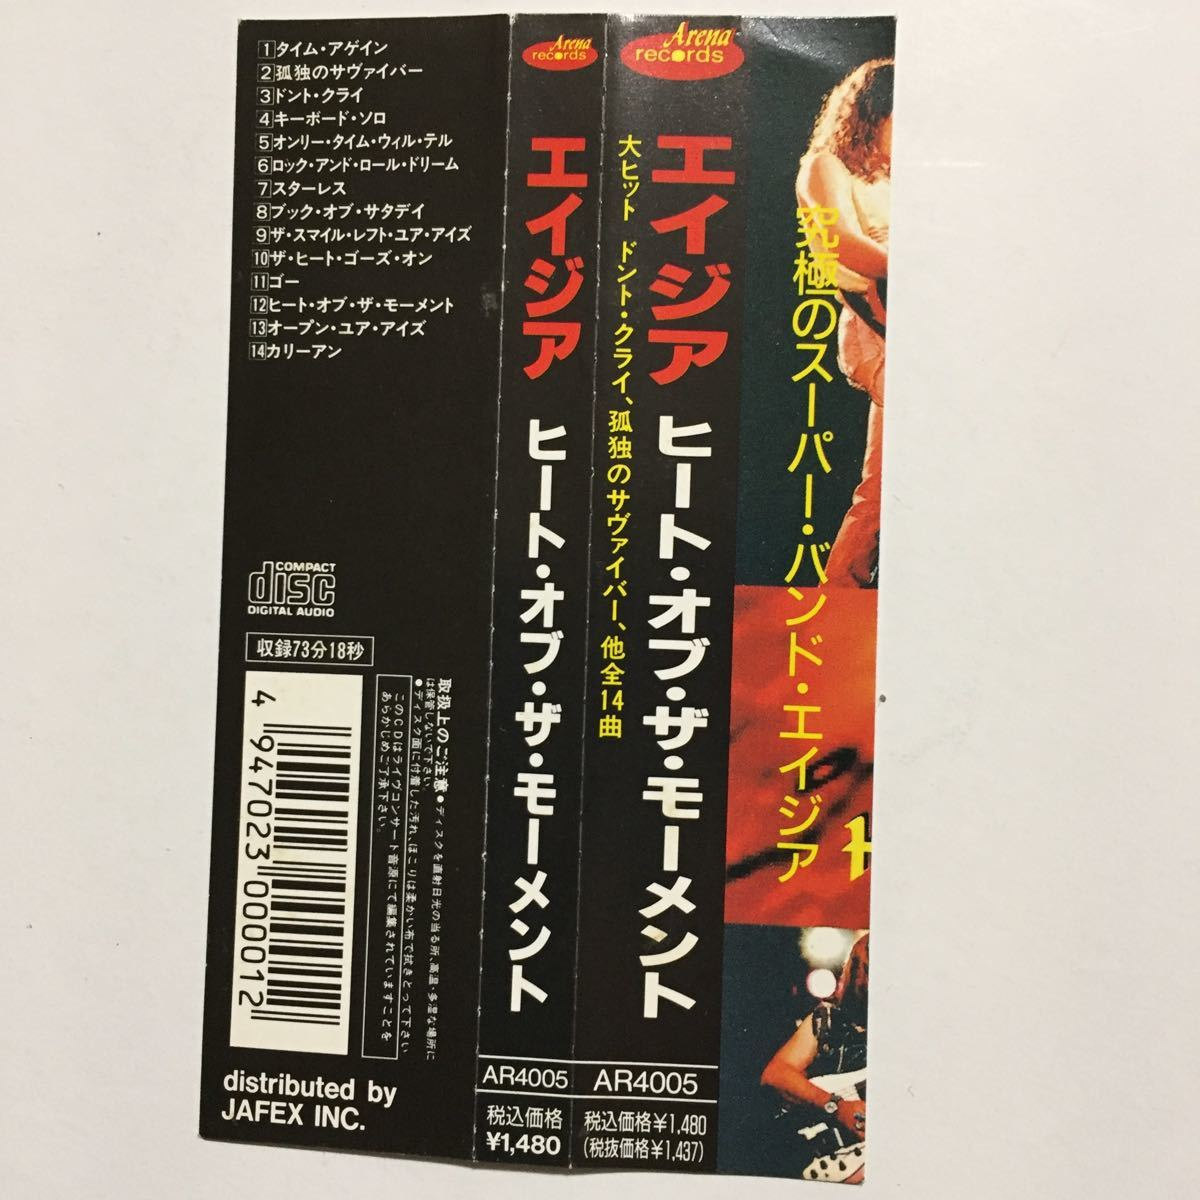 ASIA エイジア Hrat Of The Moment LIVE ライヴ Arena Records Don't Cry 並行輸入盤 全14曲収録 John Wetton Geoff Downes _画像5